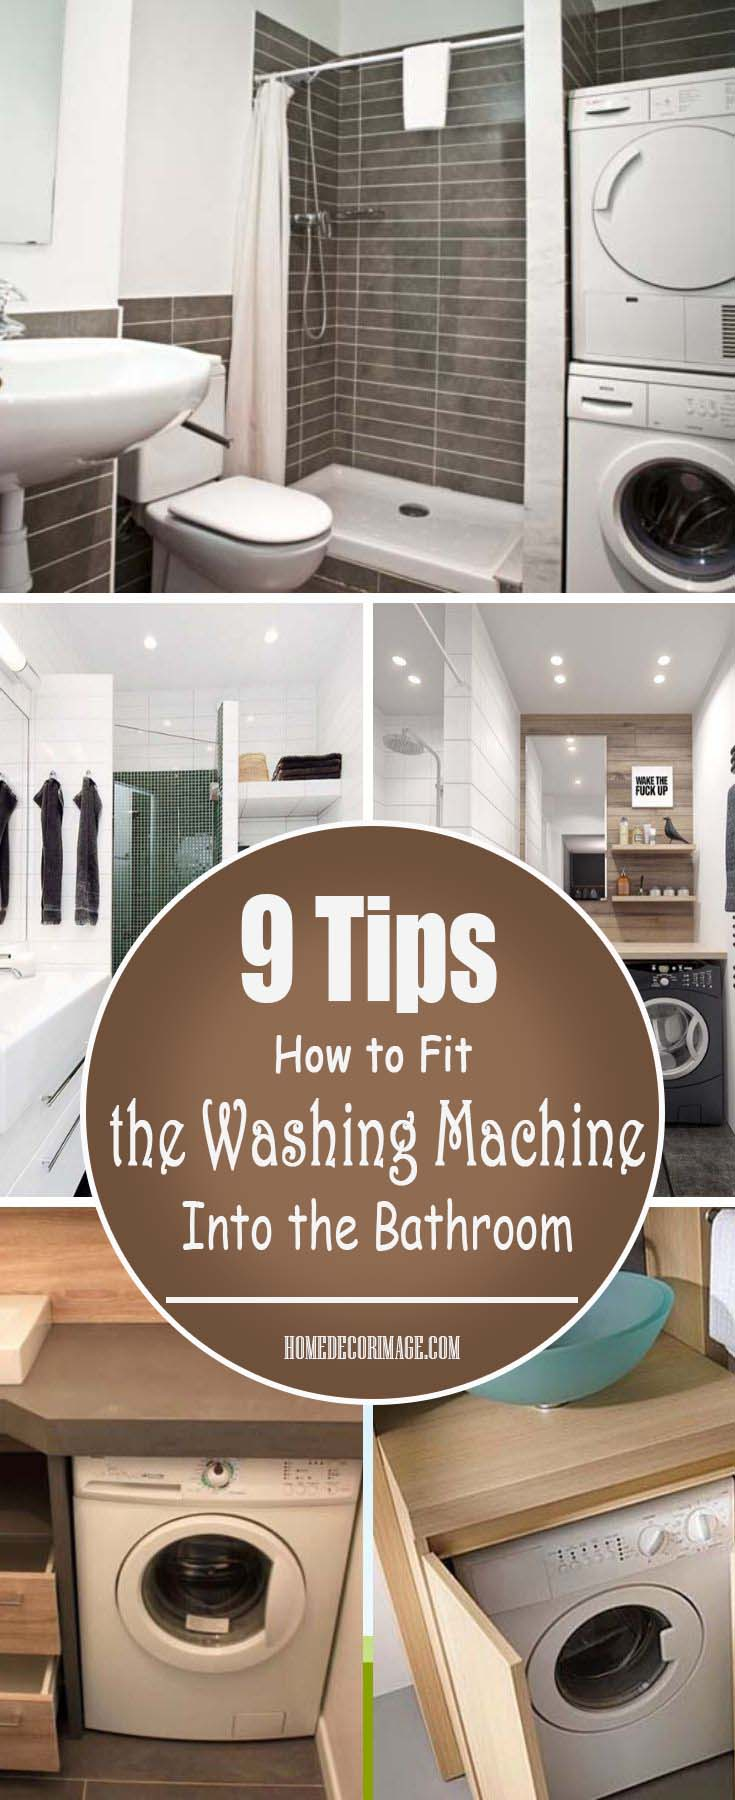 How to Fit the Washing Machine Into the Bathroom 9 Tips